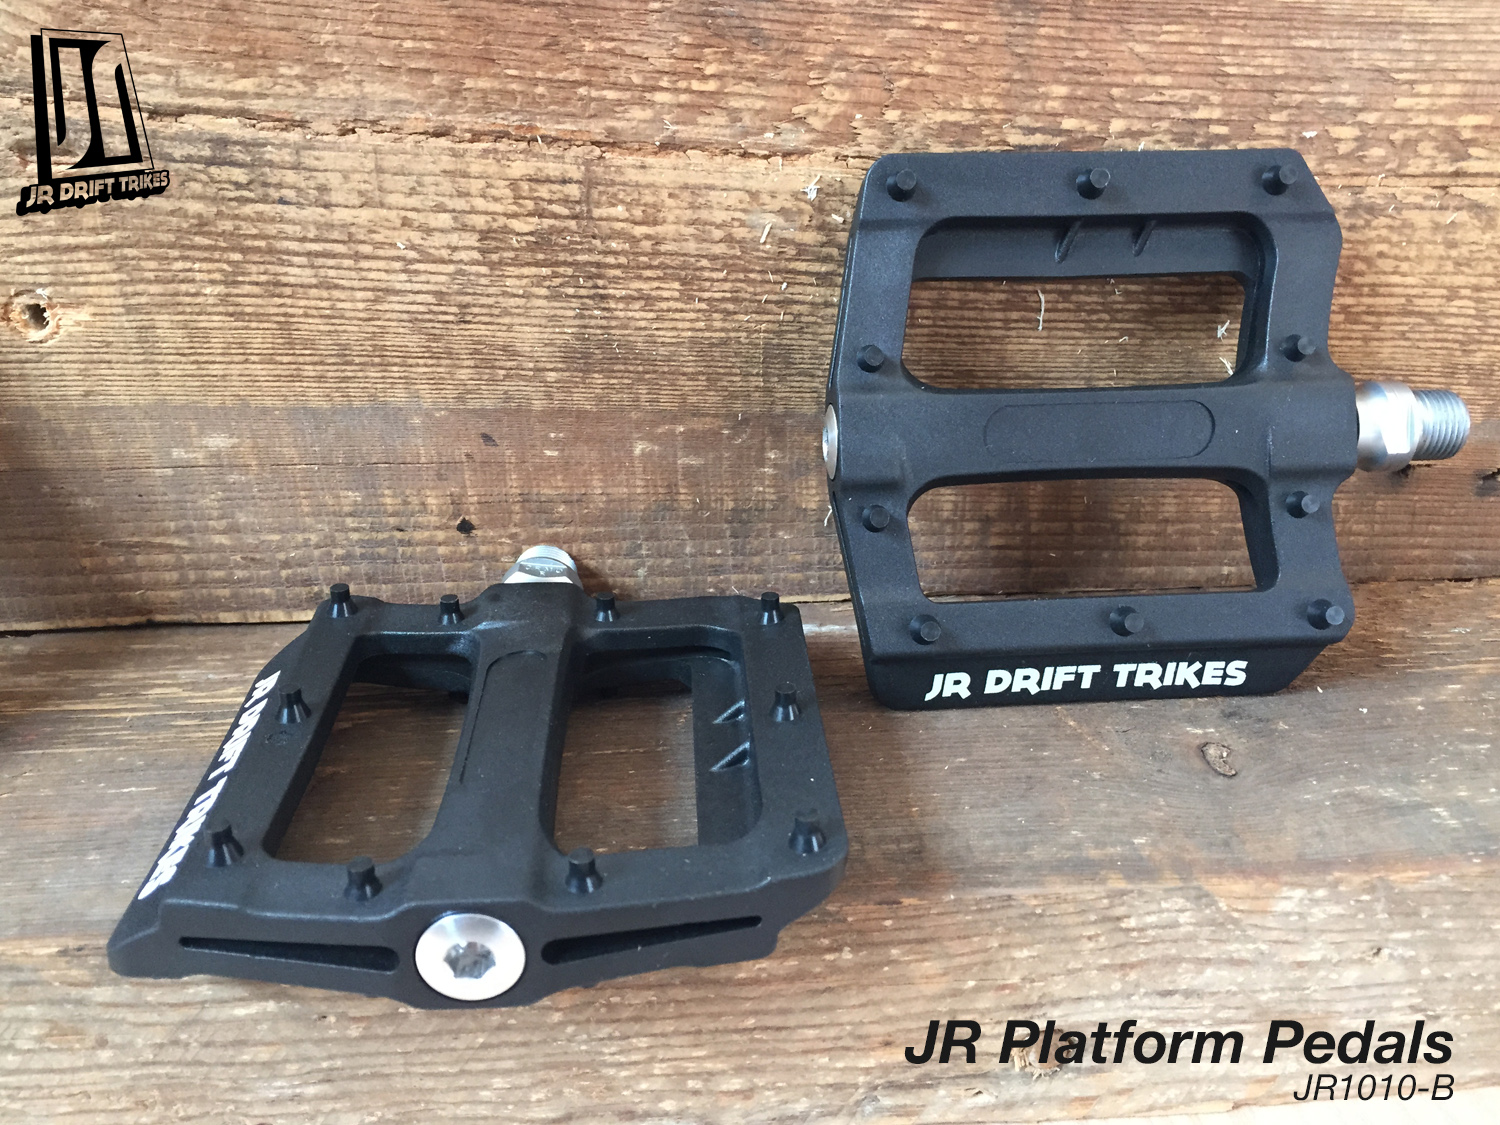 jr-drift-trikes-platform-pedals-black-jr1010-b.jpg